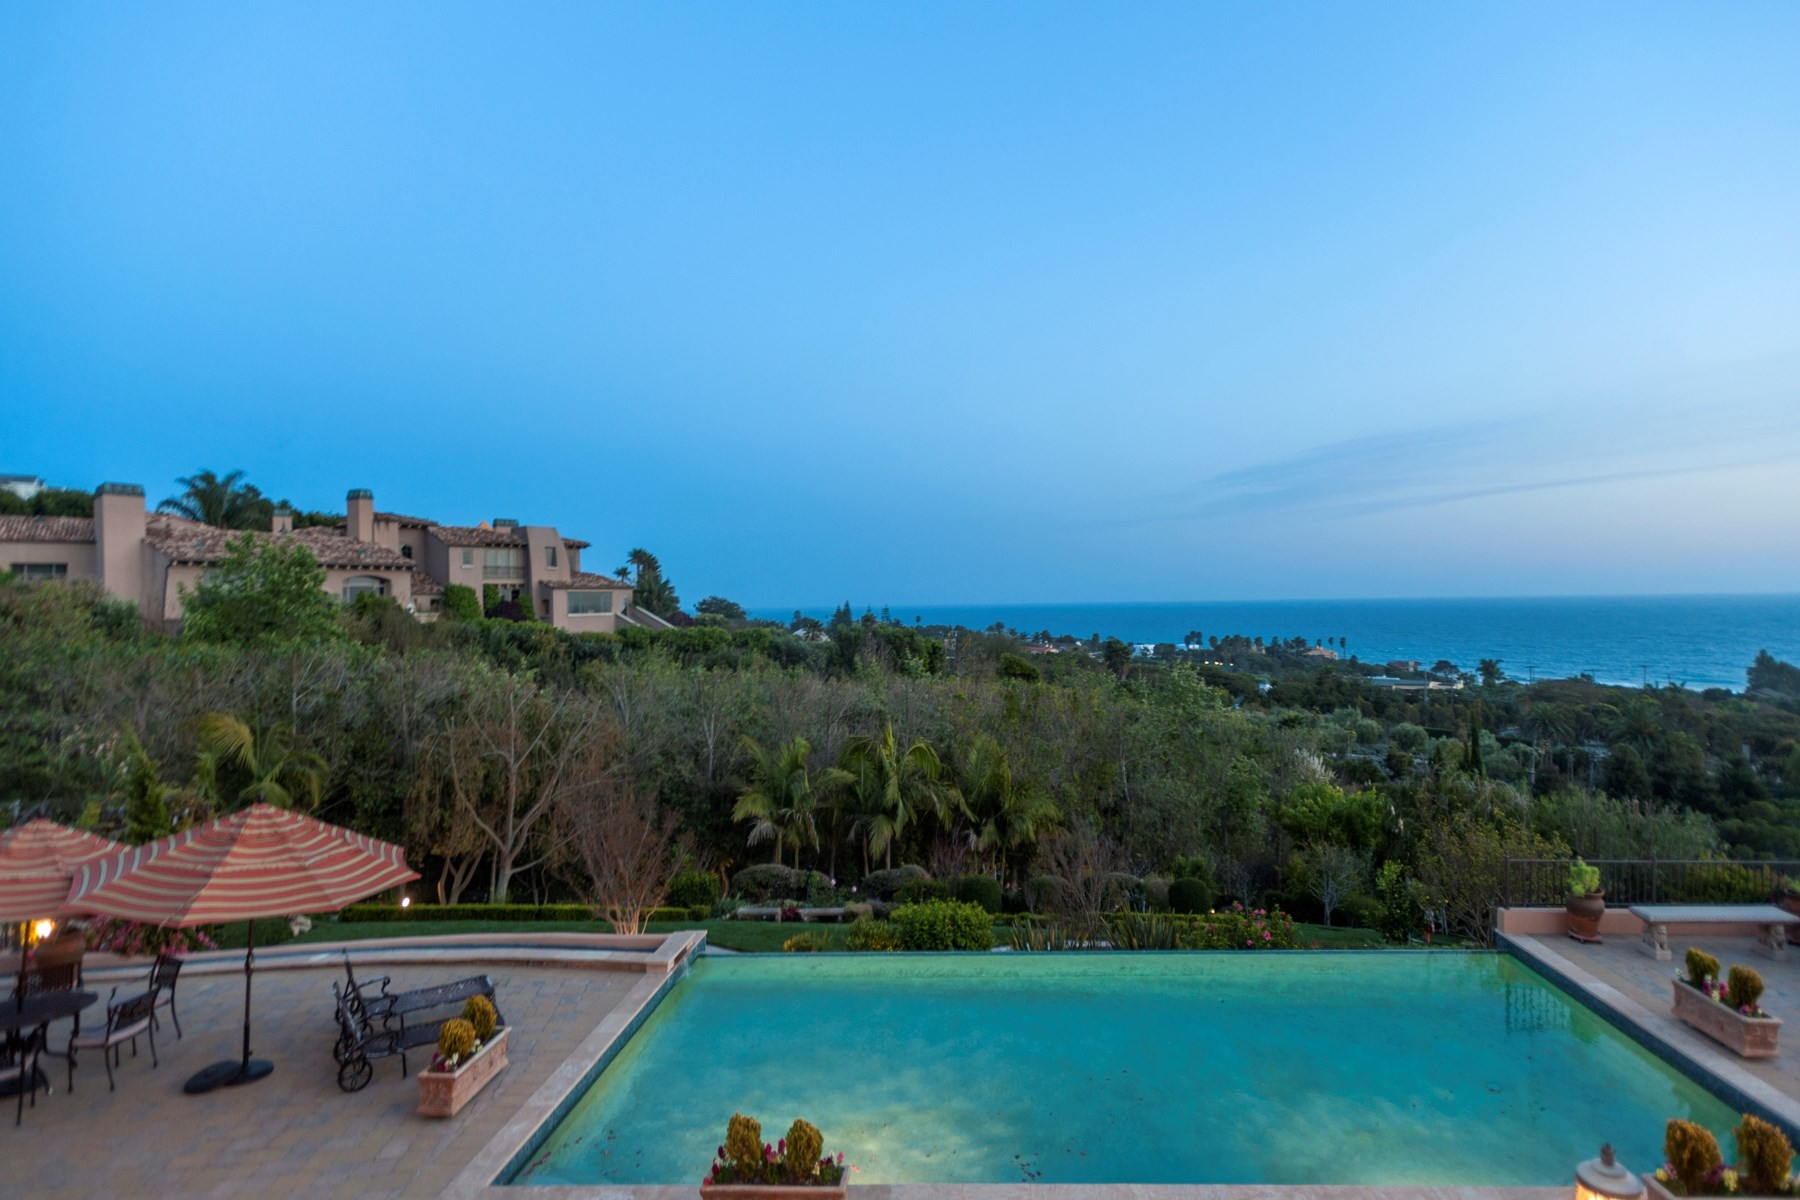 Single Family Home for Sale at Malibu's Tuscan Treasure 6322 Sea Star Drive Malibu, California 90265 United States